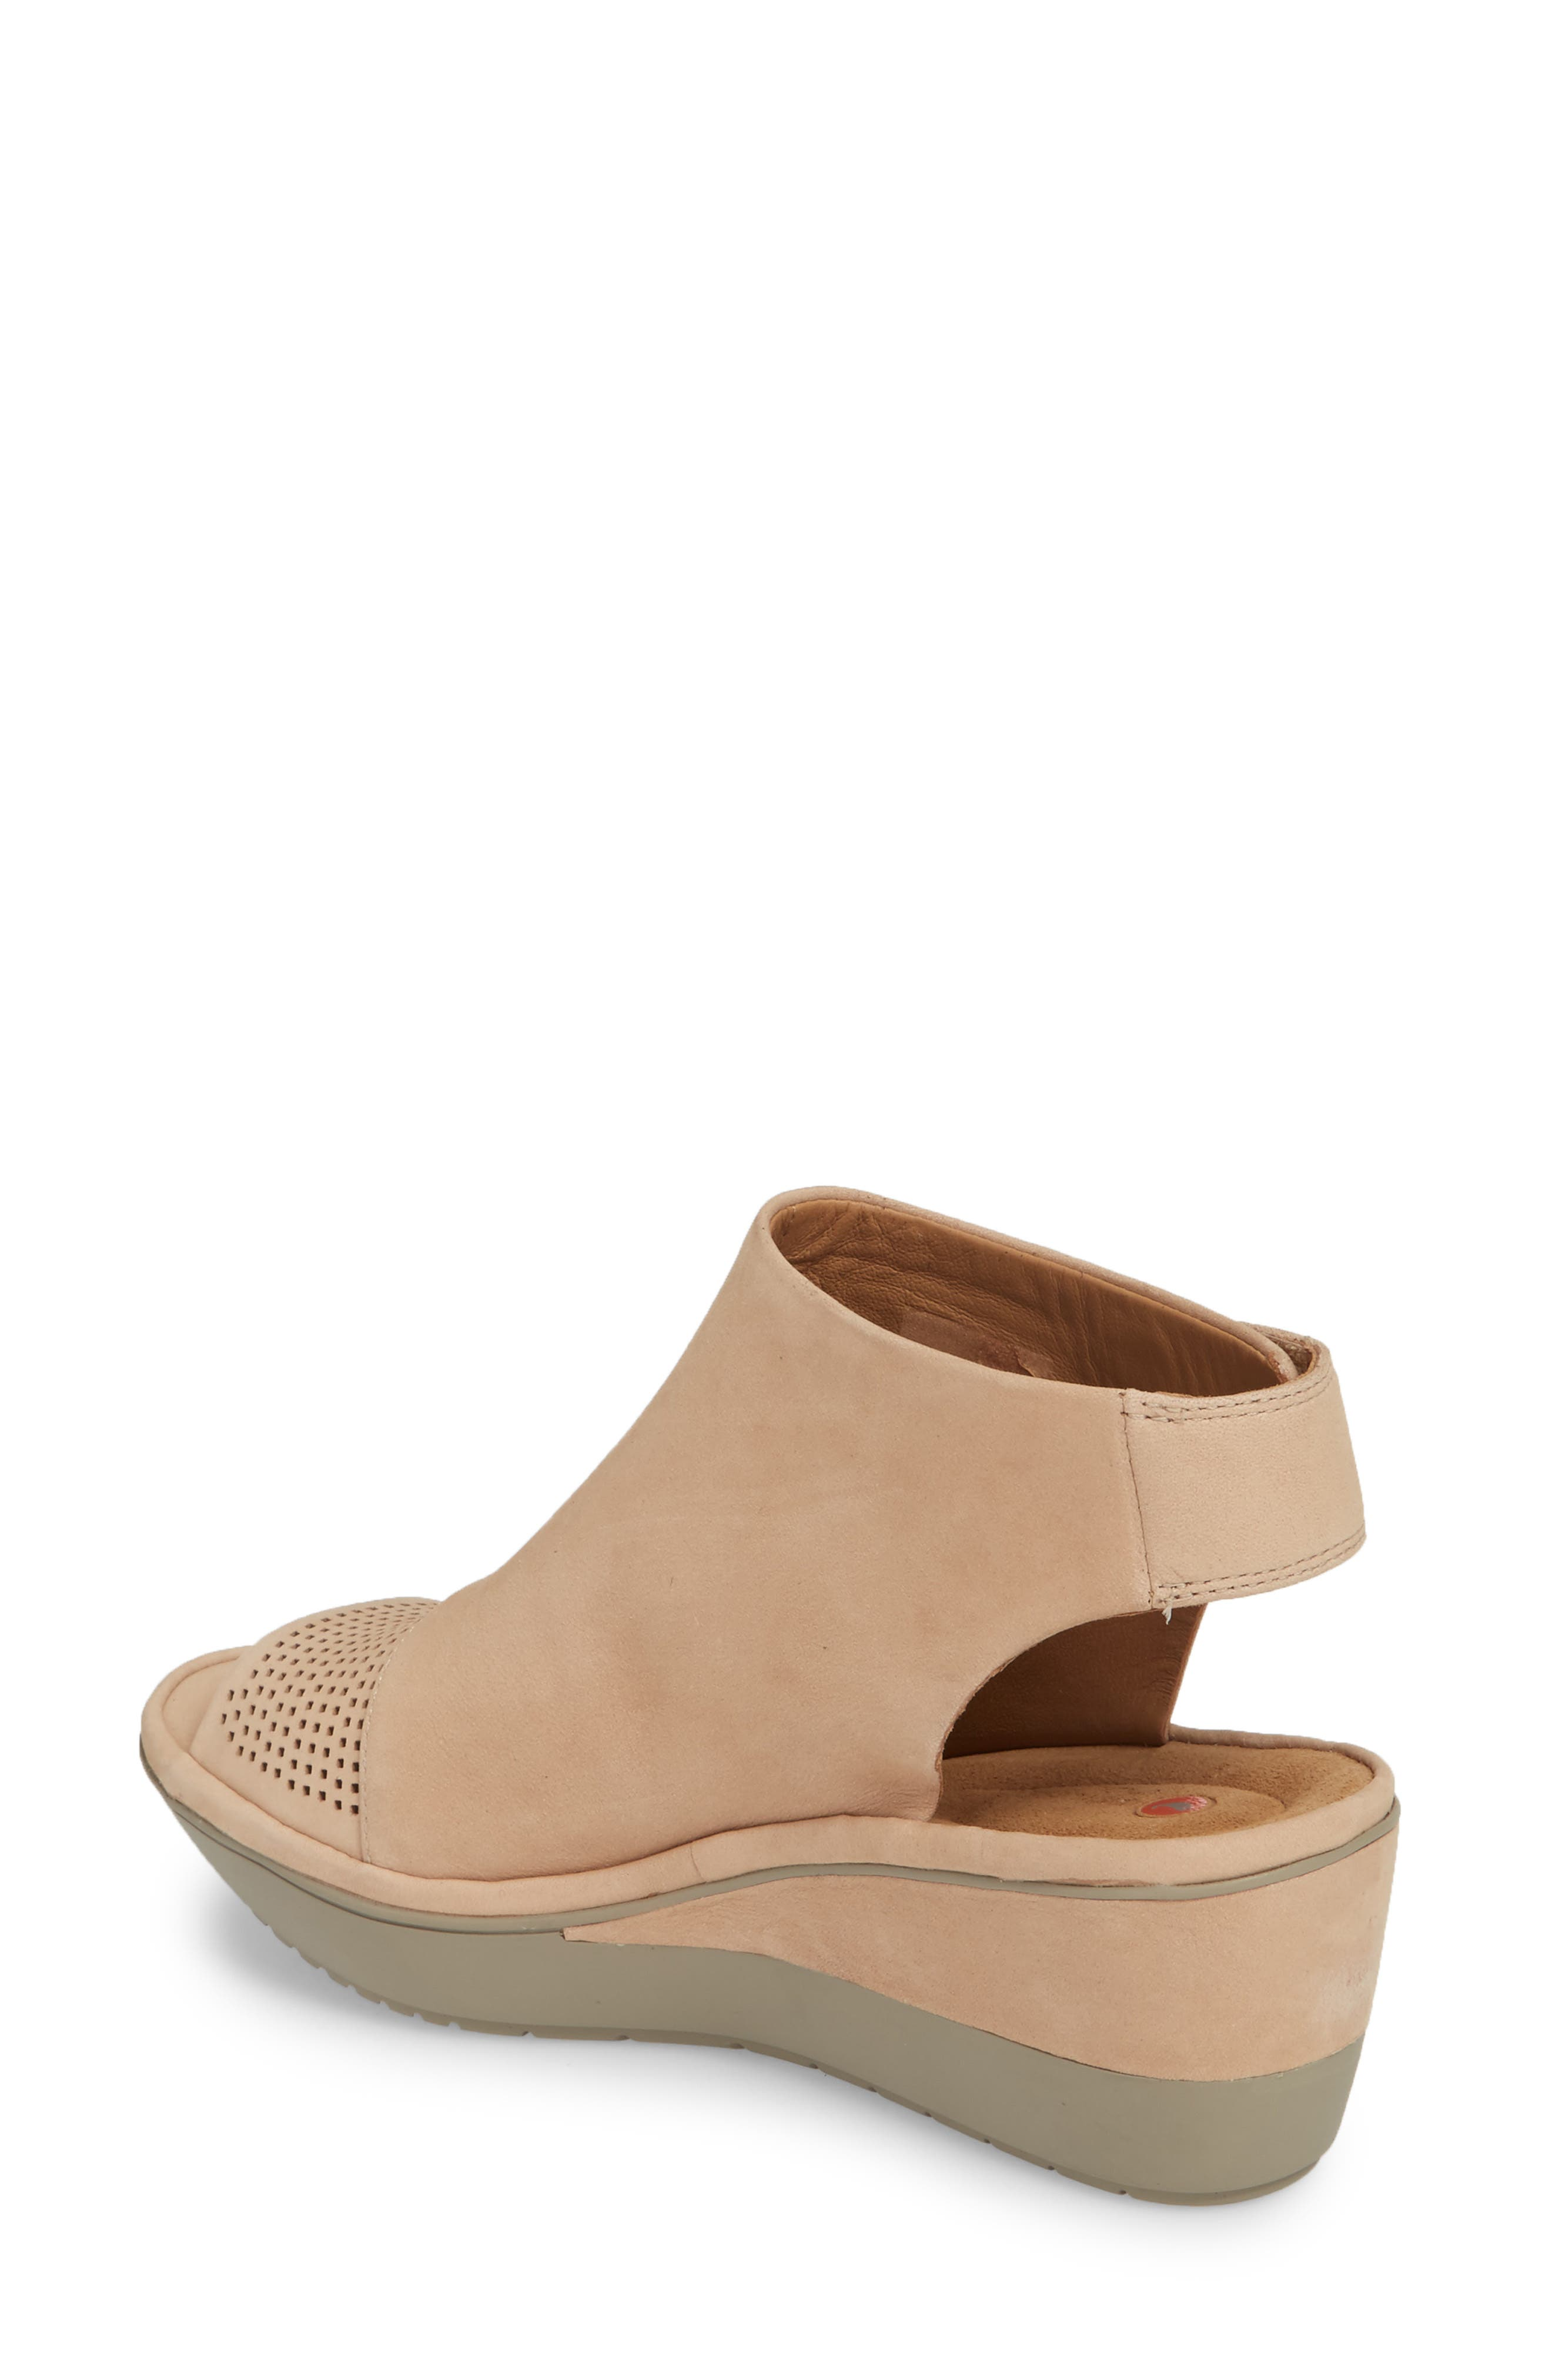 CLARKS<SUP>®</SUP>,                             Wynnmere Abie Wedge Sandal,                             Alternate thumbnail 2, color,                             273